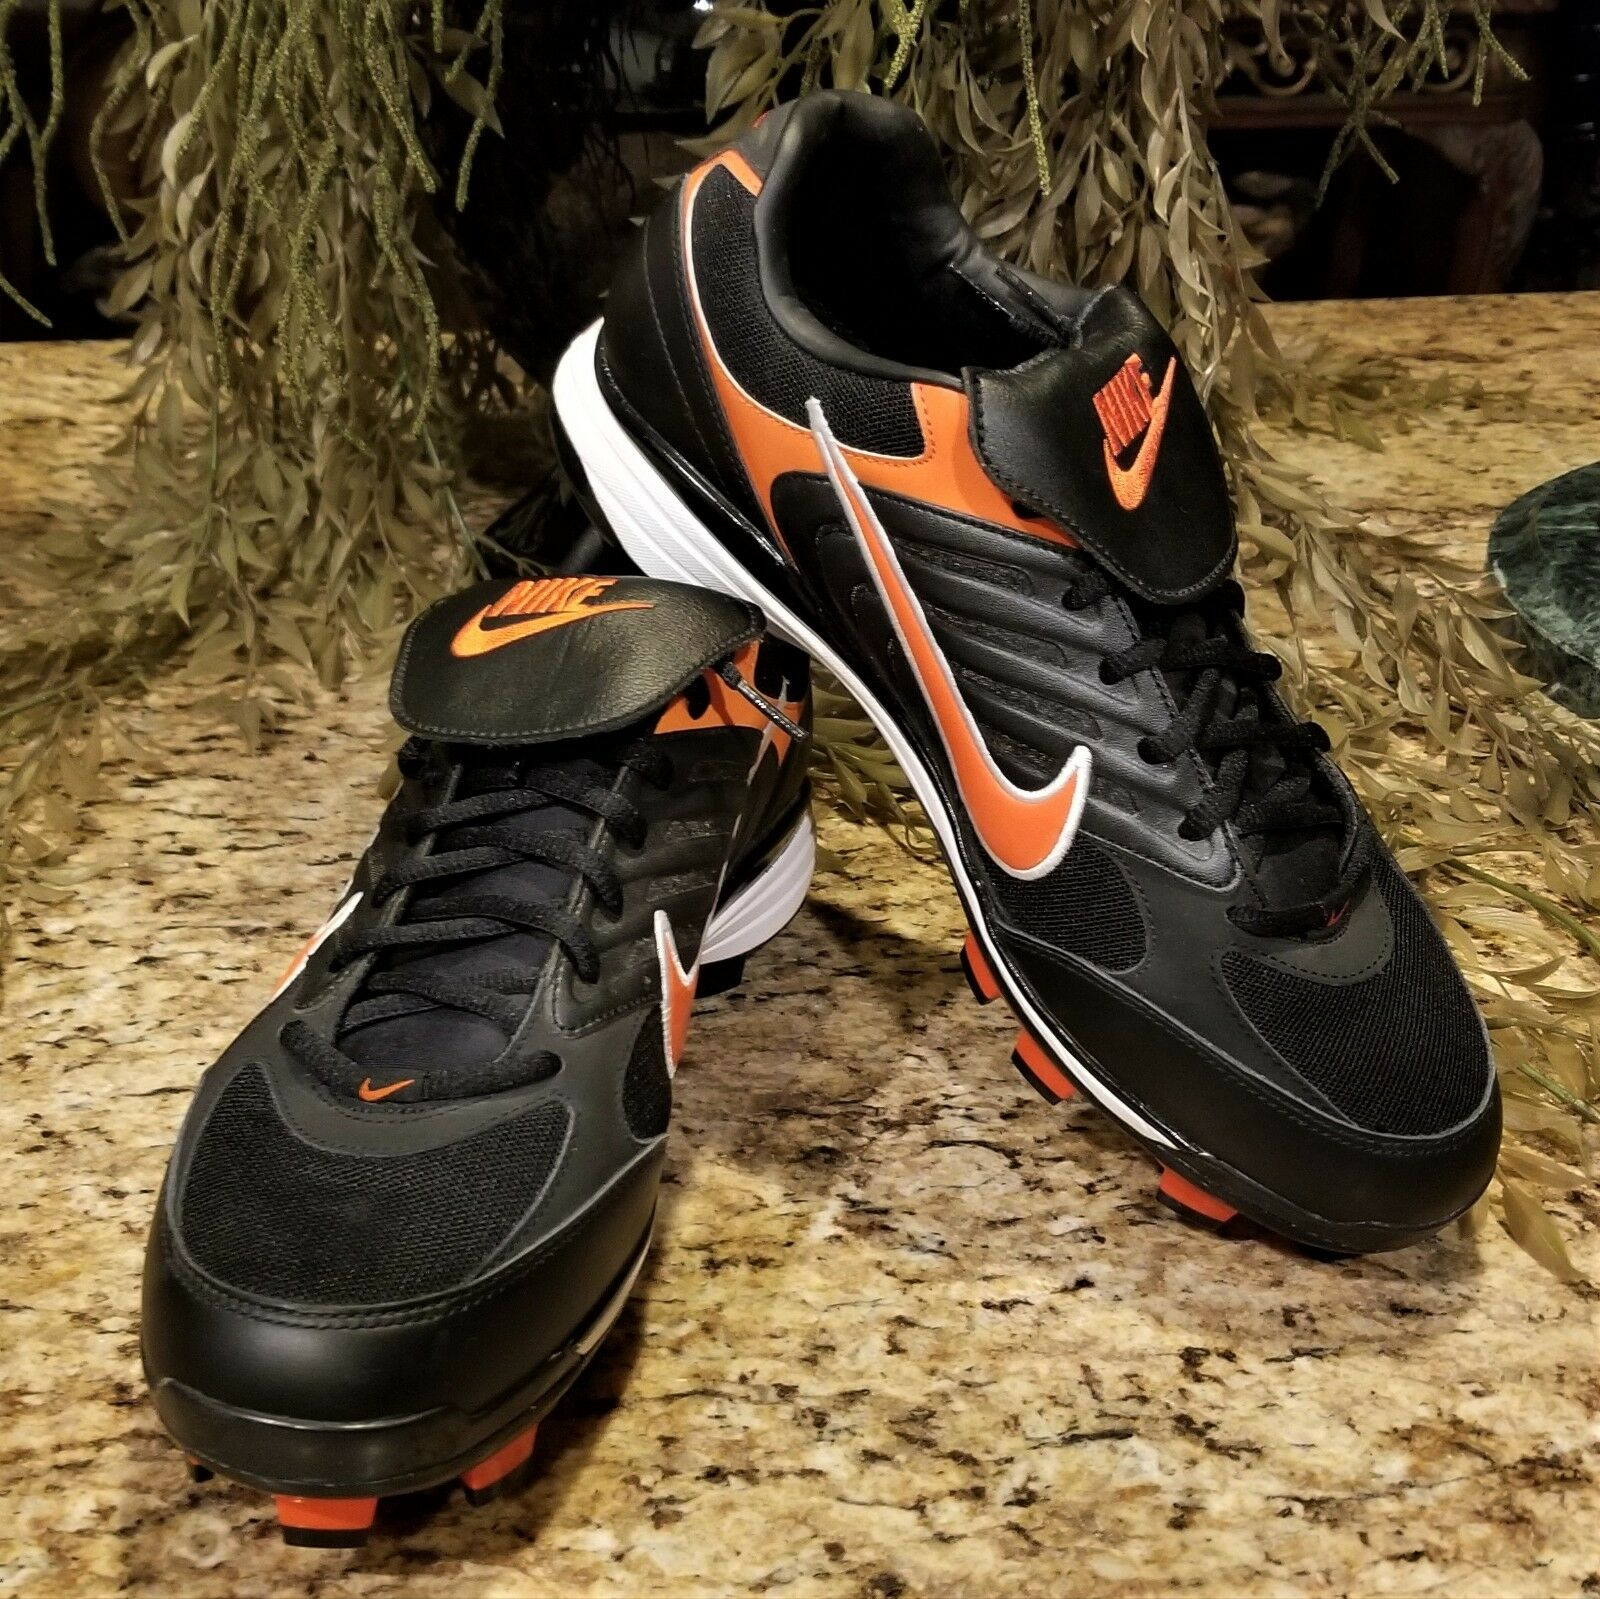 New 2007 Nike Zoom Air Clipper Air Zoom Black & orange Athletic Cleats 314817